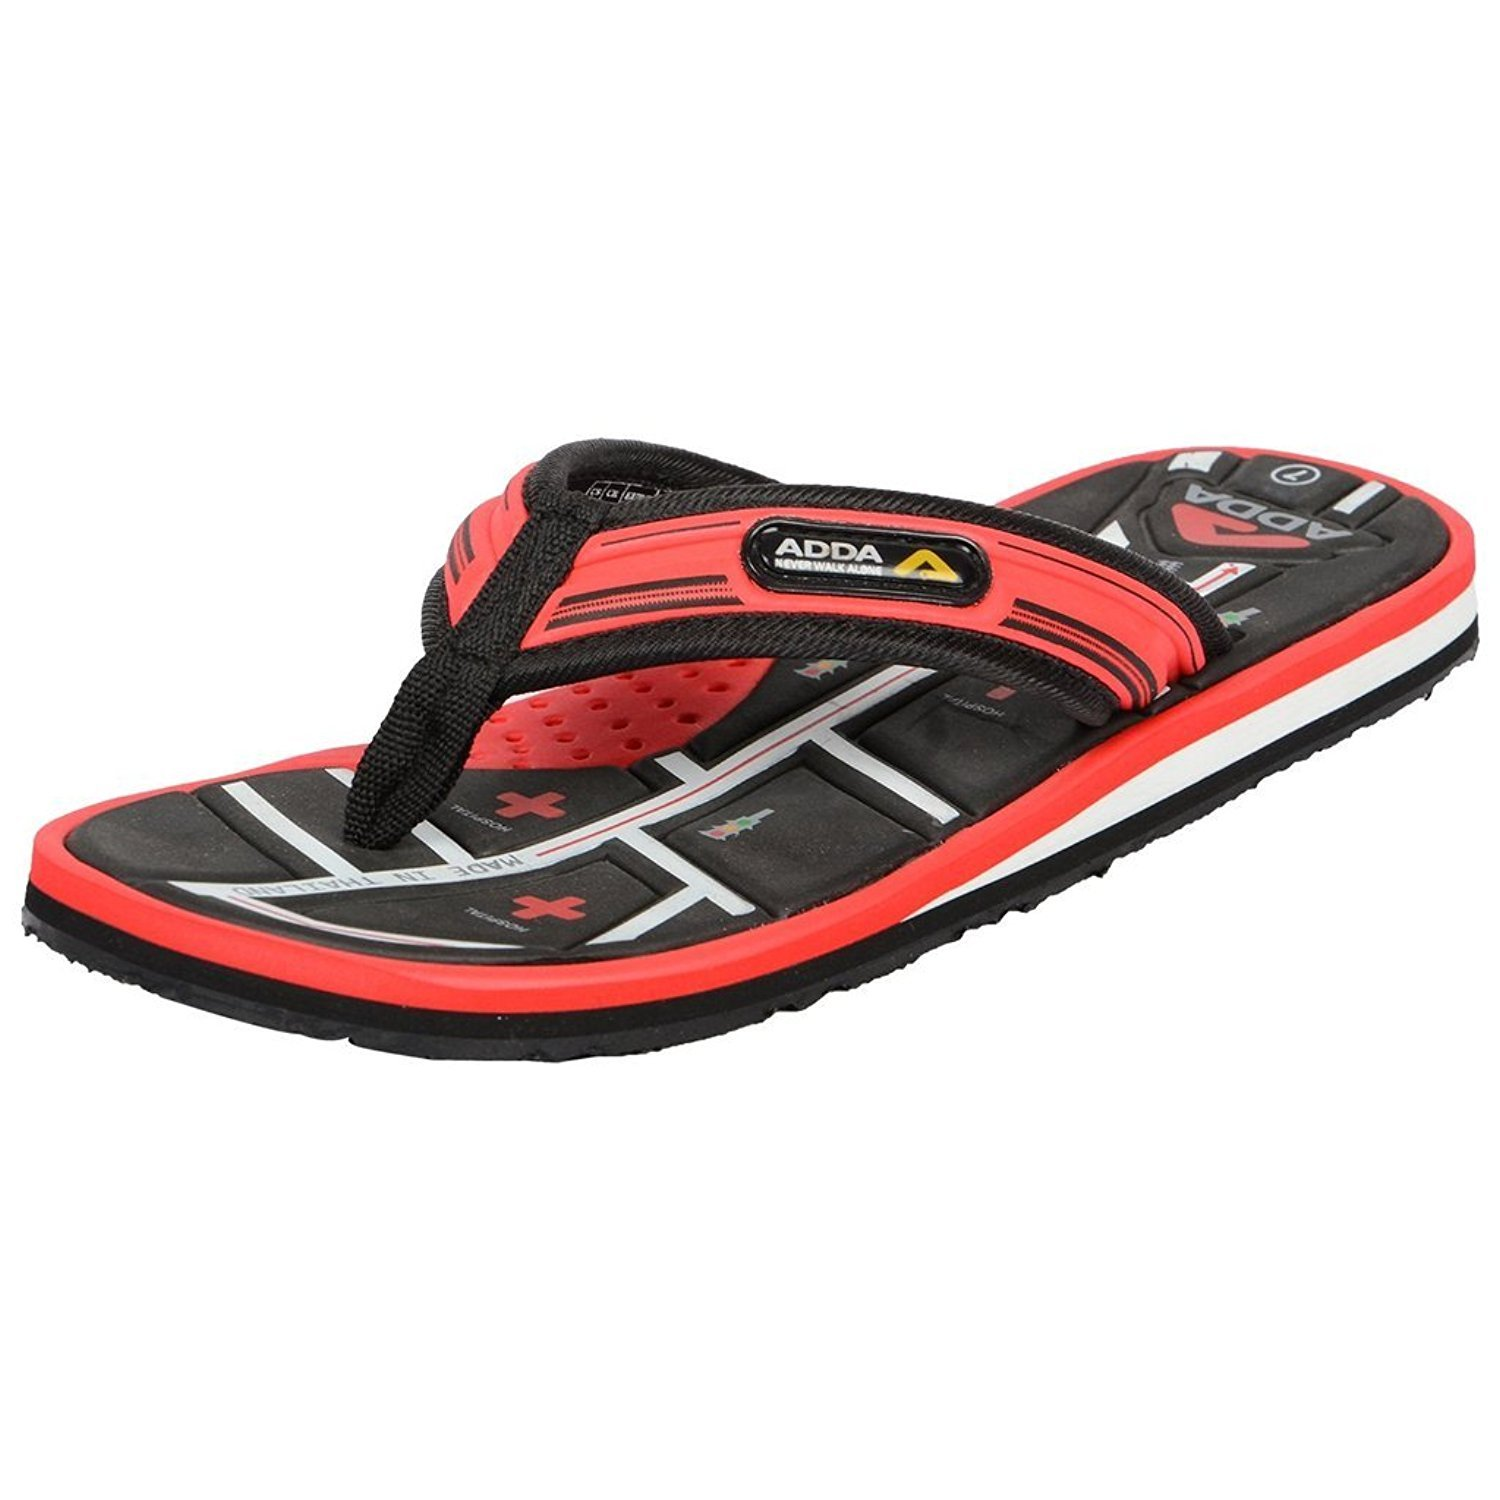 fb622fb47 Adda Men s Omega 4 Navy Blue   White Flip-Flops  Buy Online at Low Prices  in India - Amazon.in